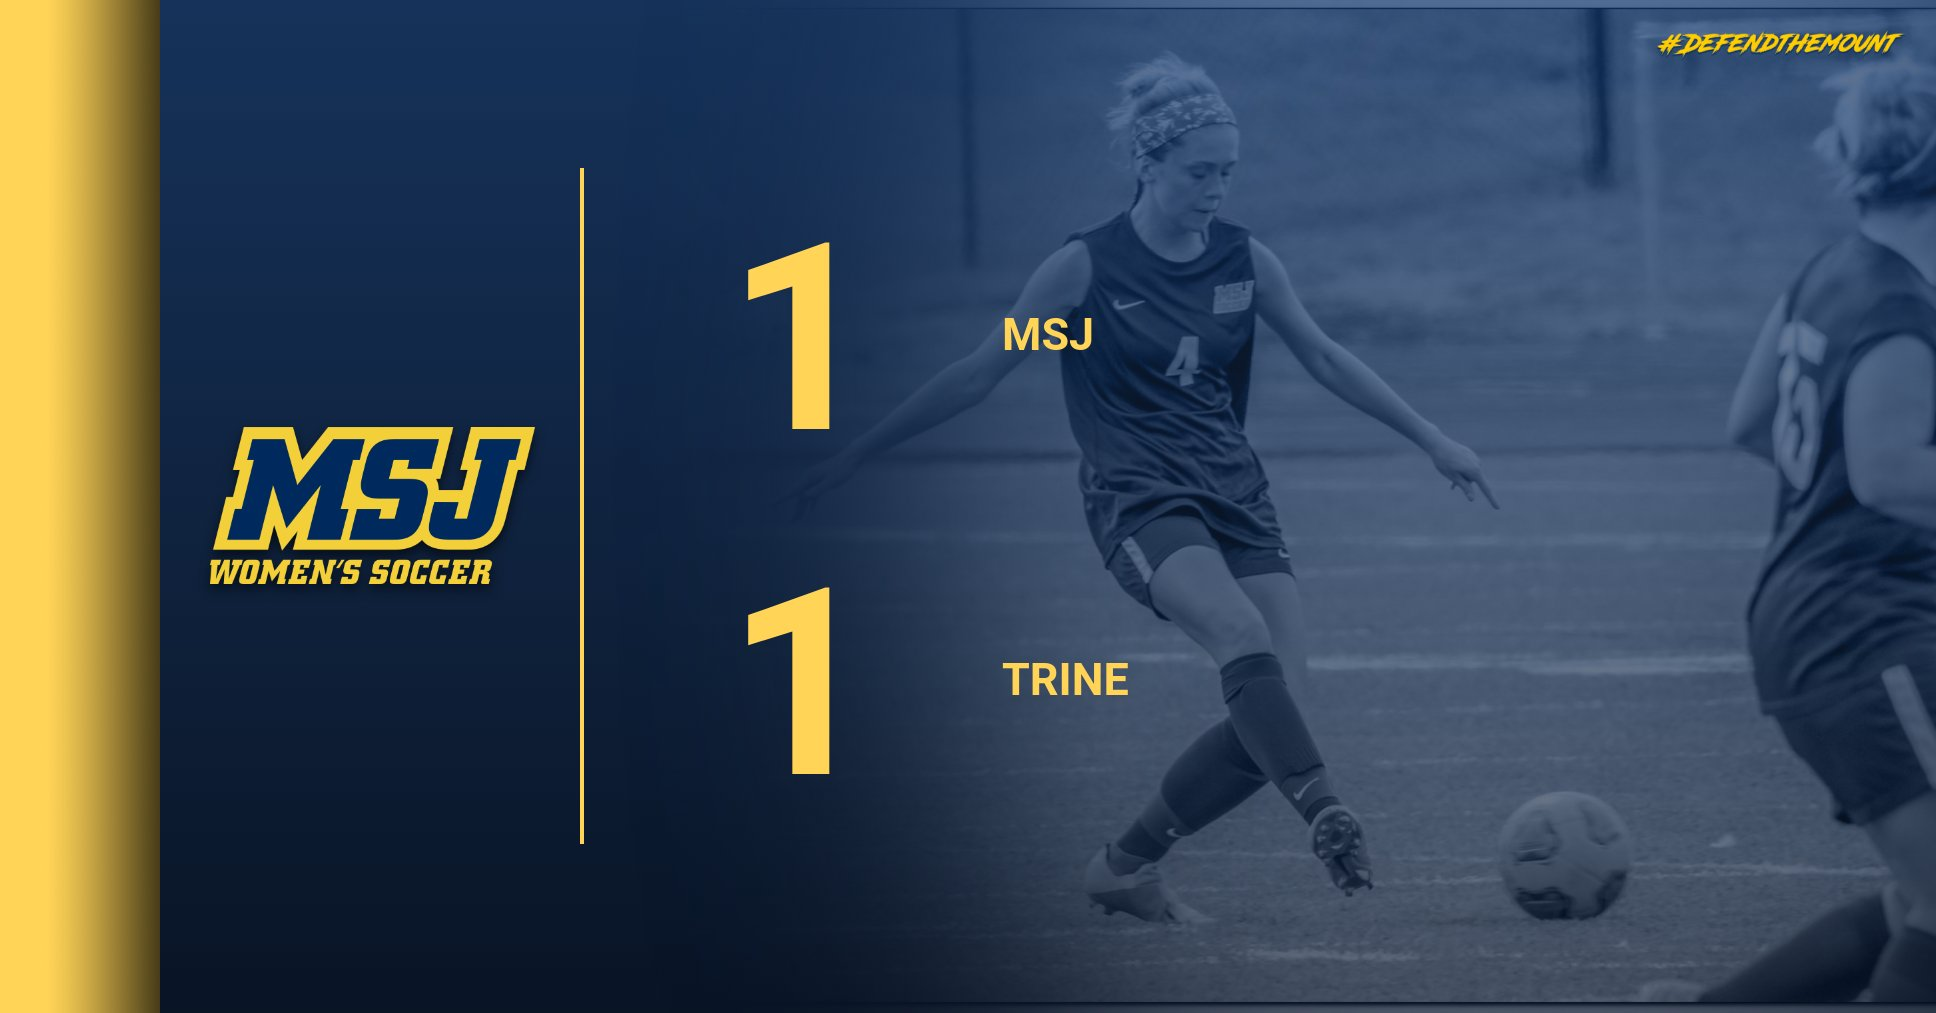 Lions open up the season with a tie against Trine